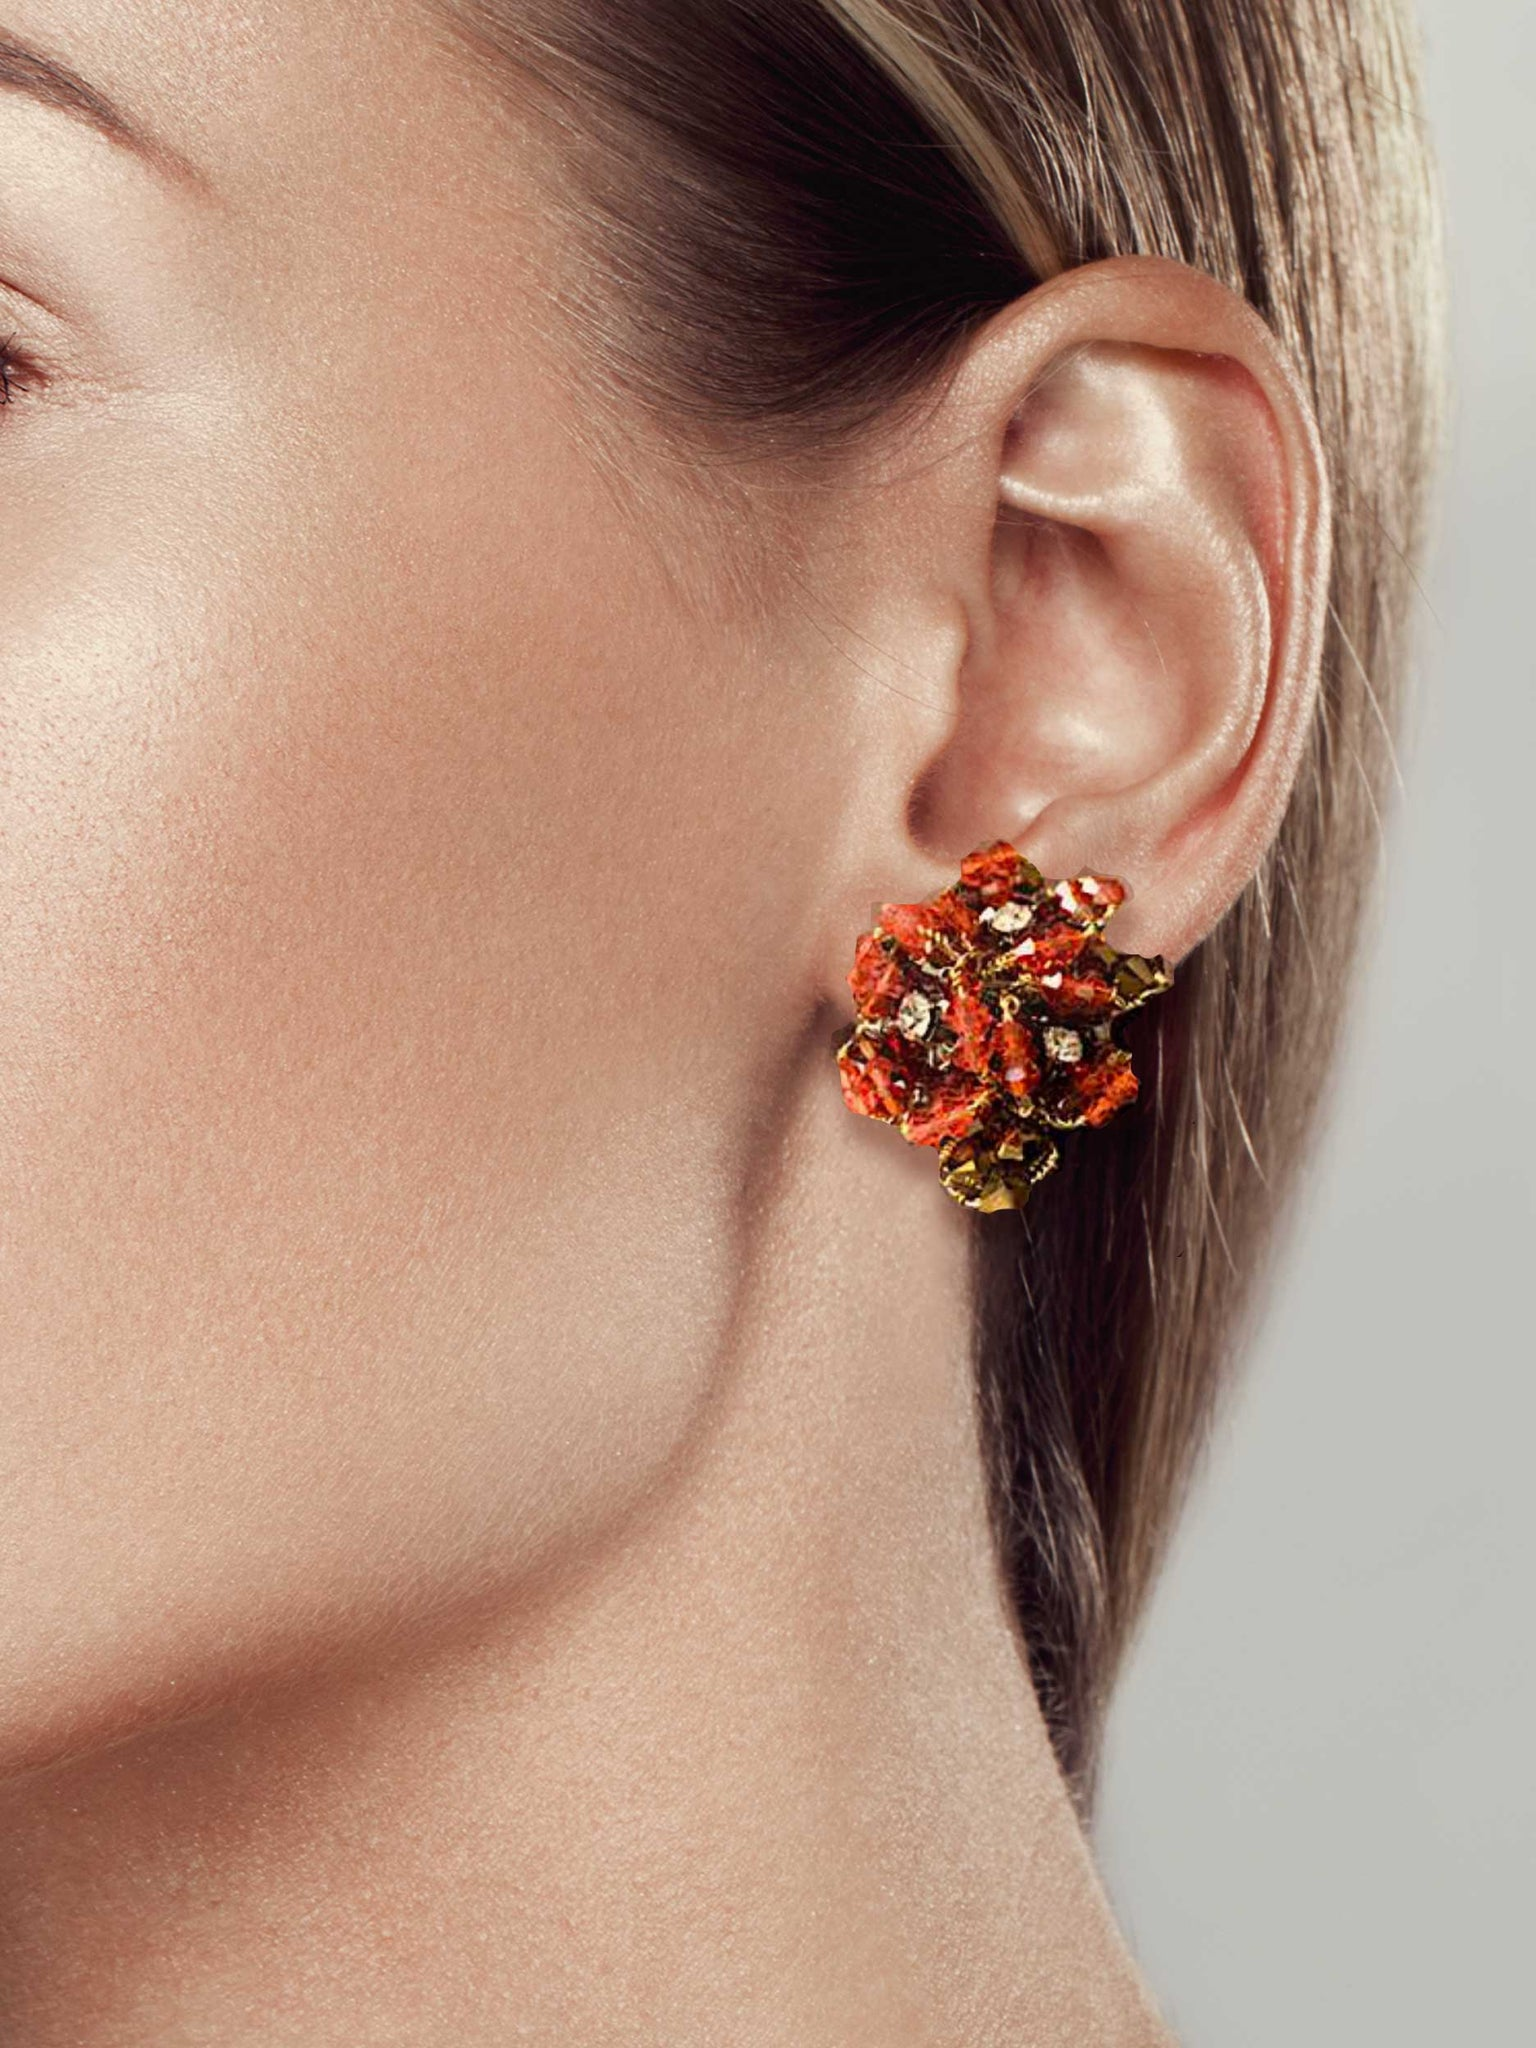 Mindy Lam Collection NKF Tri-bud Earrings